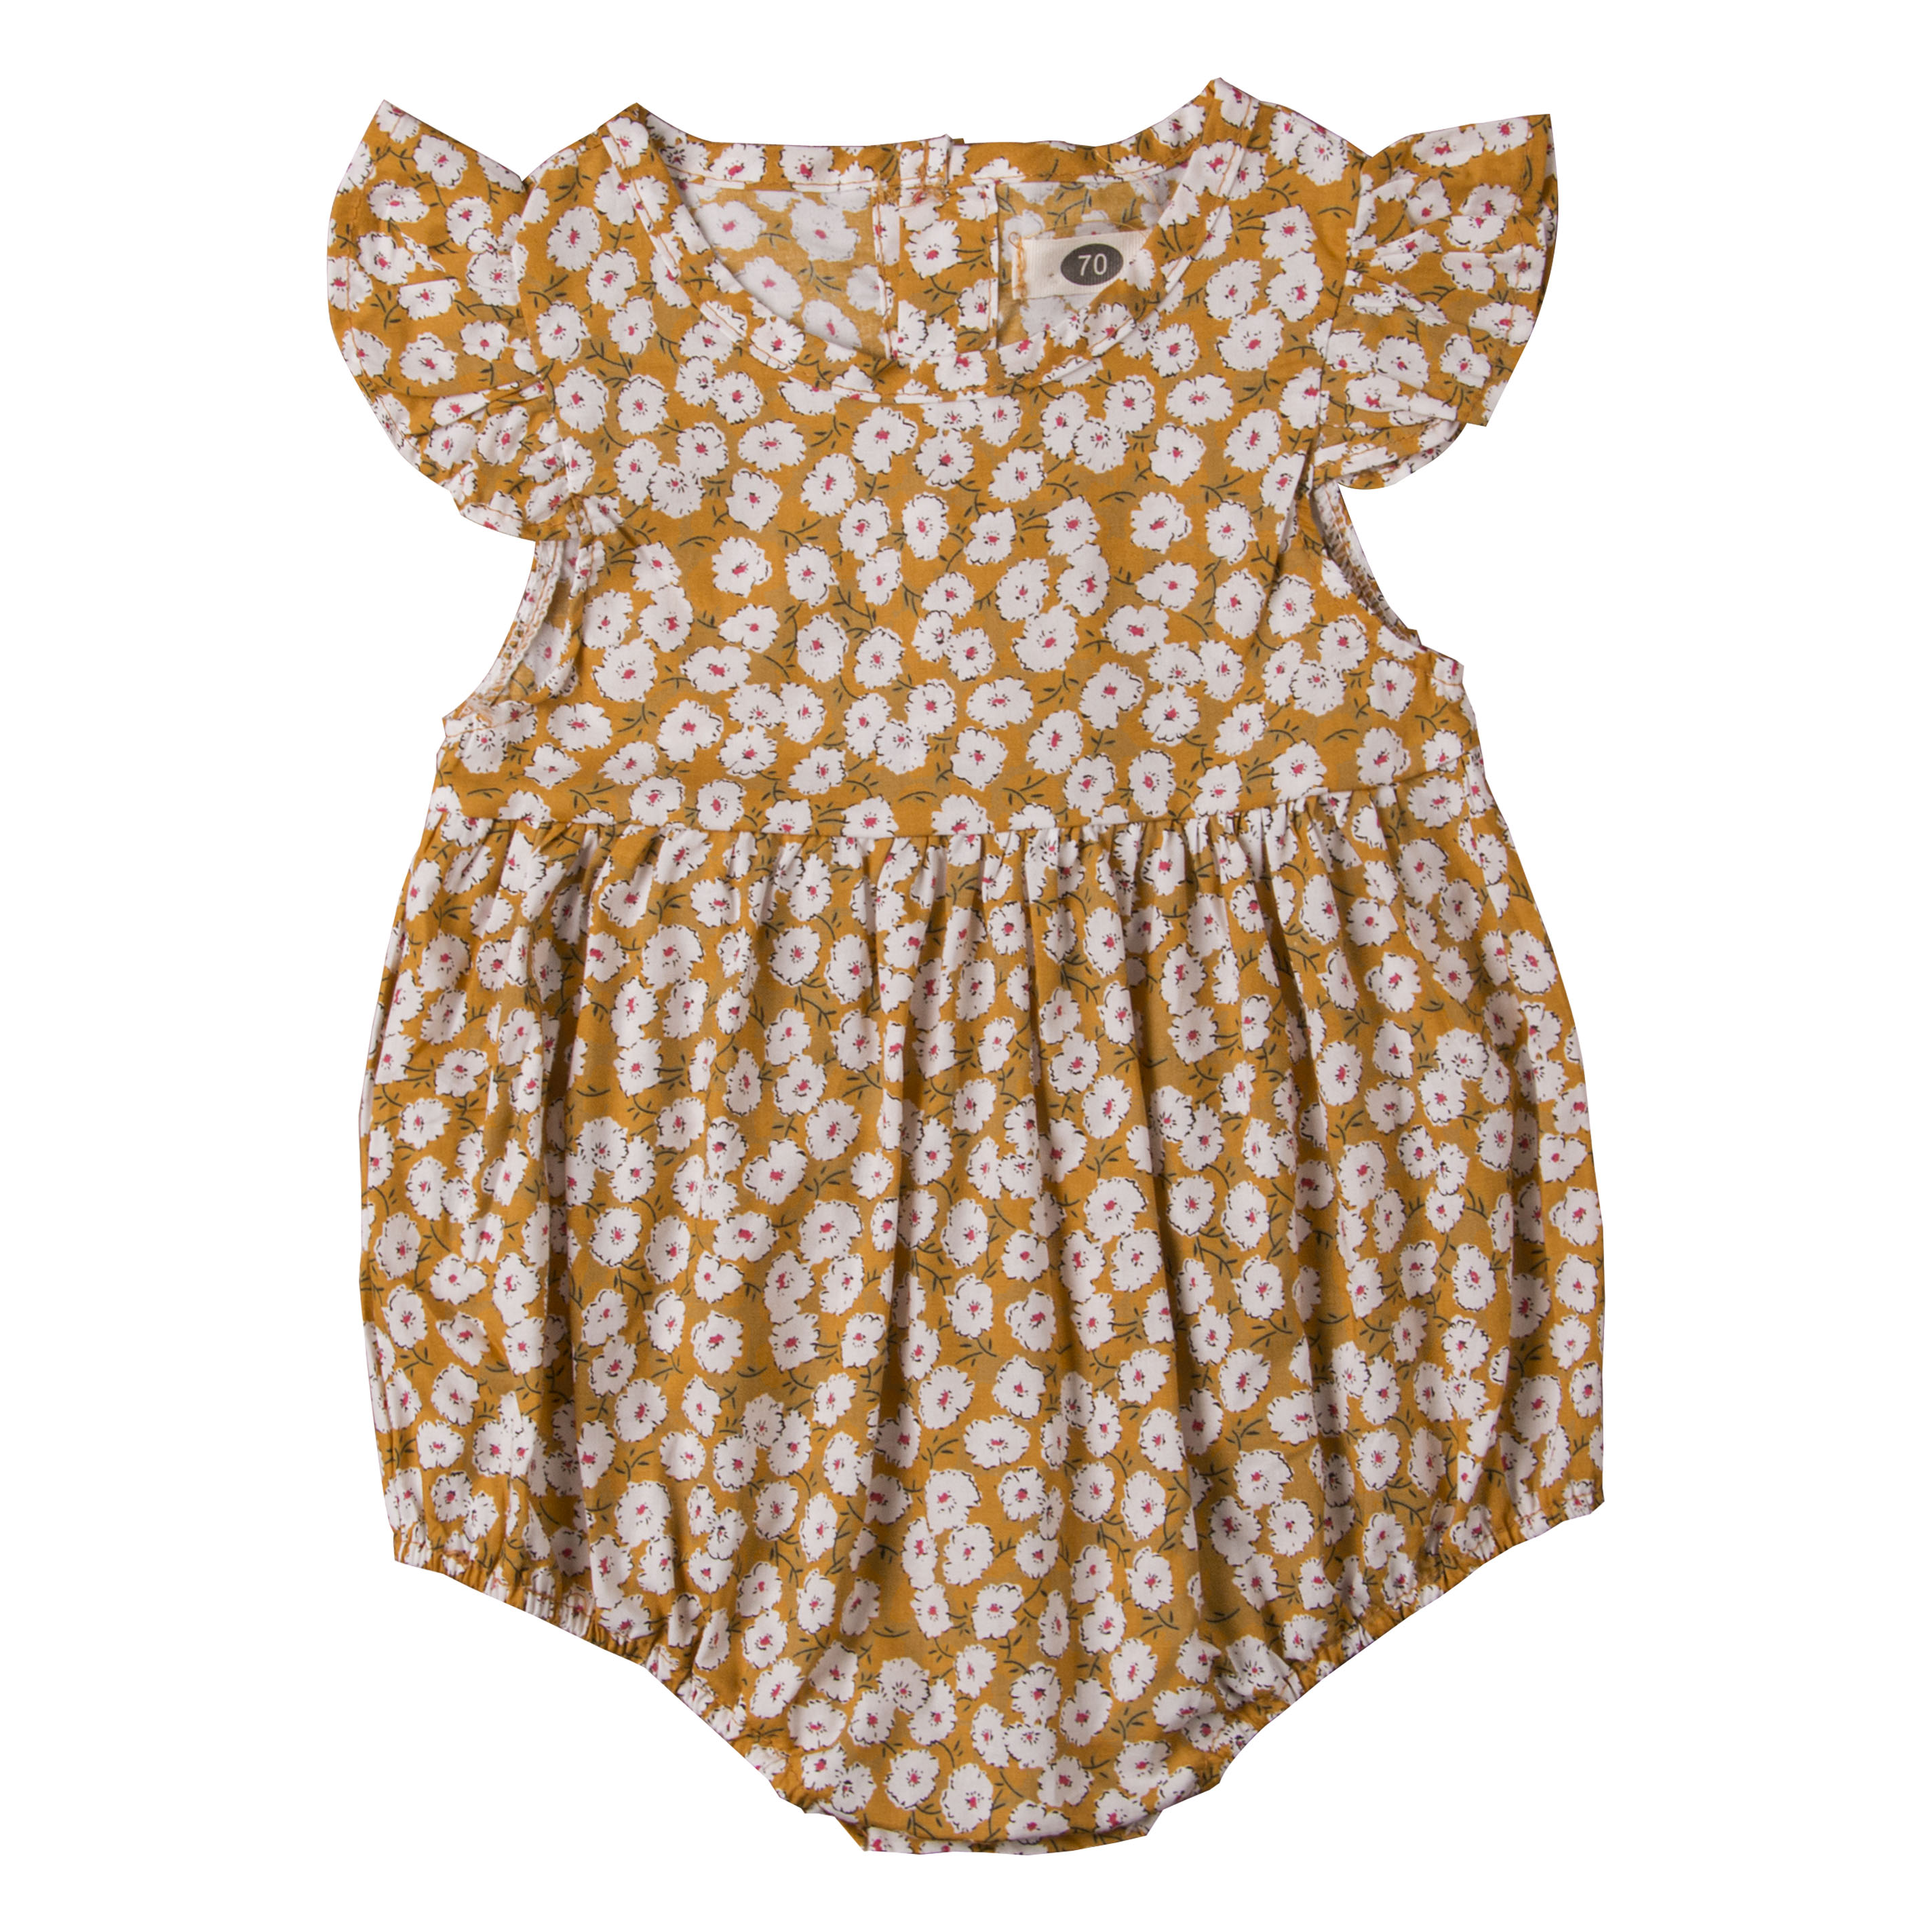 Pudcoco Flower Newborn Baby Girl Rompers Summer Baby Girls Clothing Ruffles Rompers Jumpsuit Playsuit Pudcoco Flower Newborn Baby Girl Rompers Summer Baby Girls Clothing Ruffles Rompers Jumpsuit Playsuit